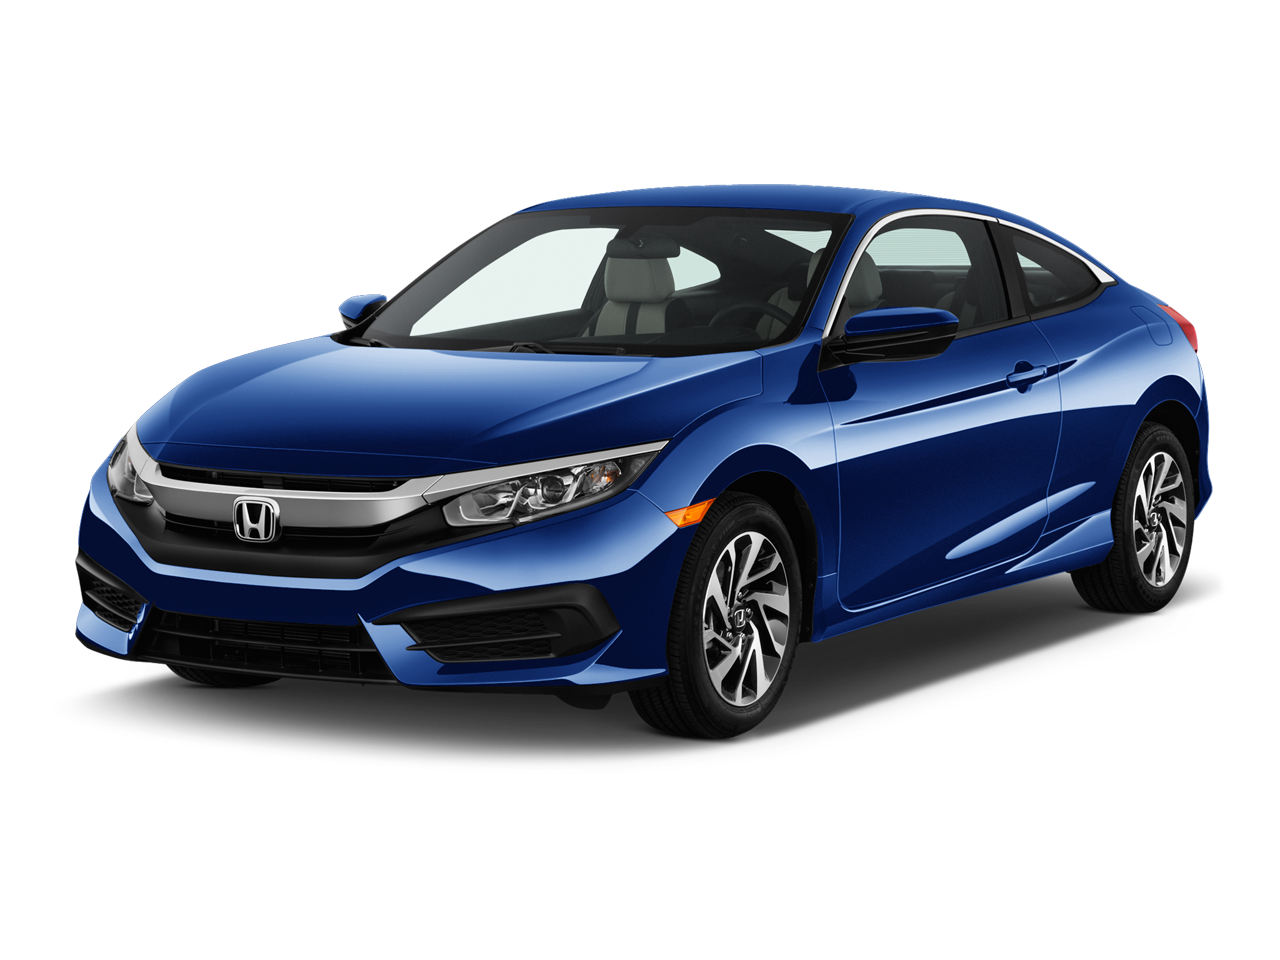 New 2017 honda civic lx p near sunnyvale ca larry for Honda civic dealership